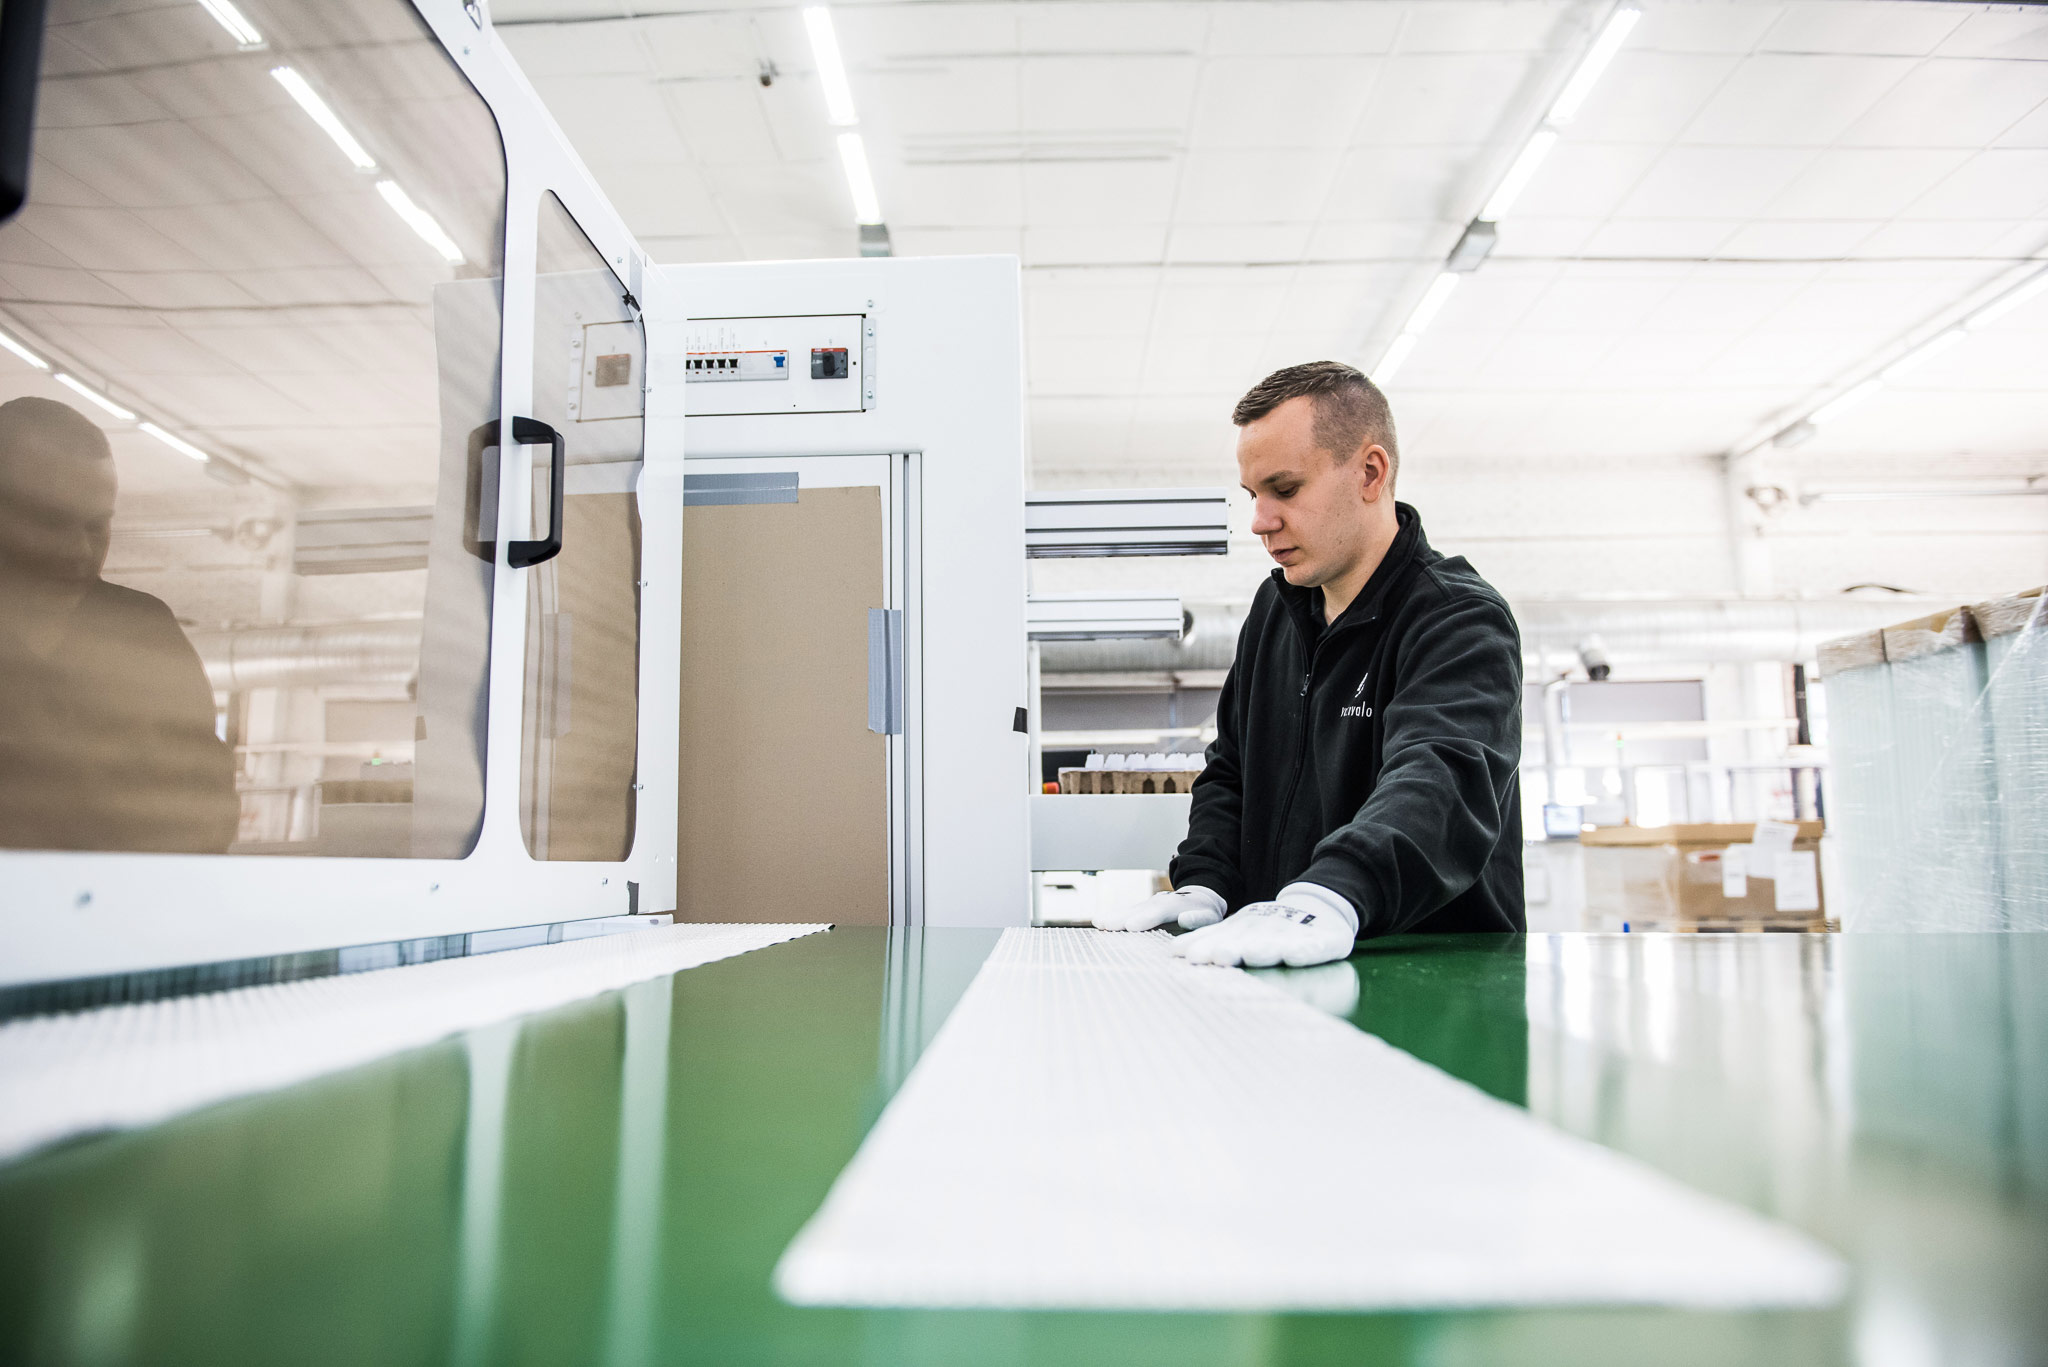 A Finnish industrial innovation brings local manufacturing back